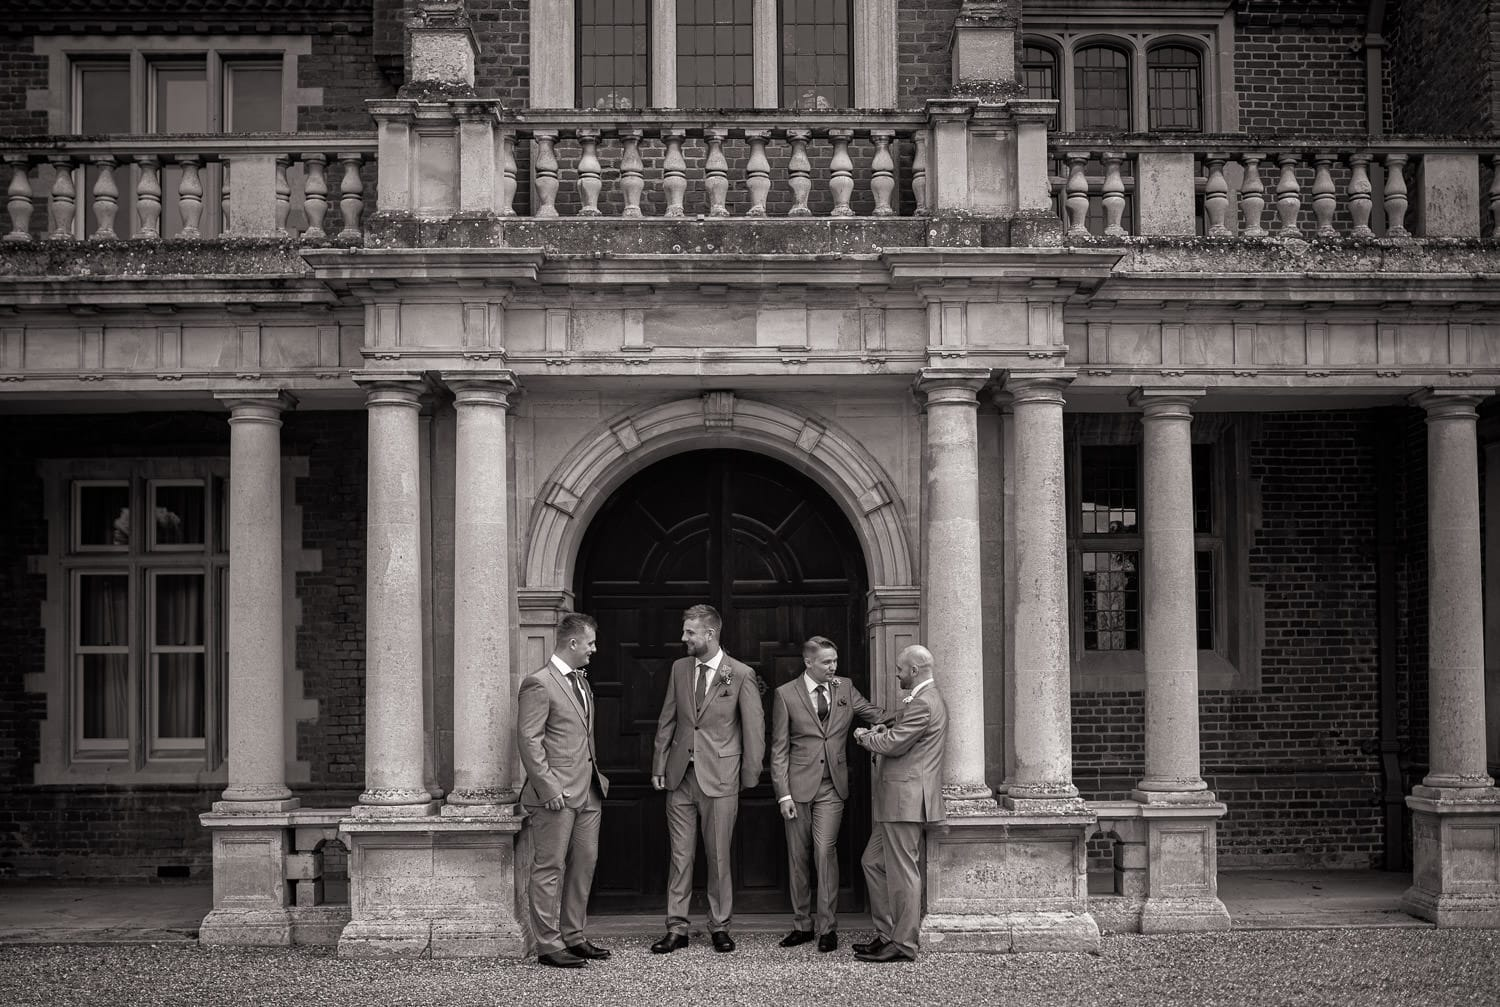 Grooms and party standing at Longstowe Hall Weddings in black and white